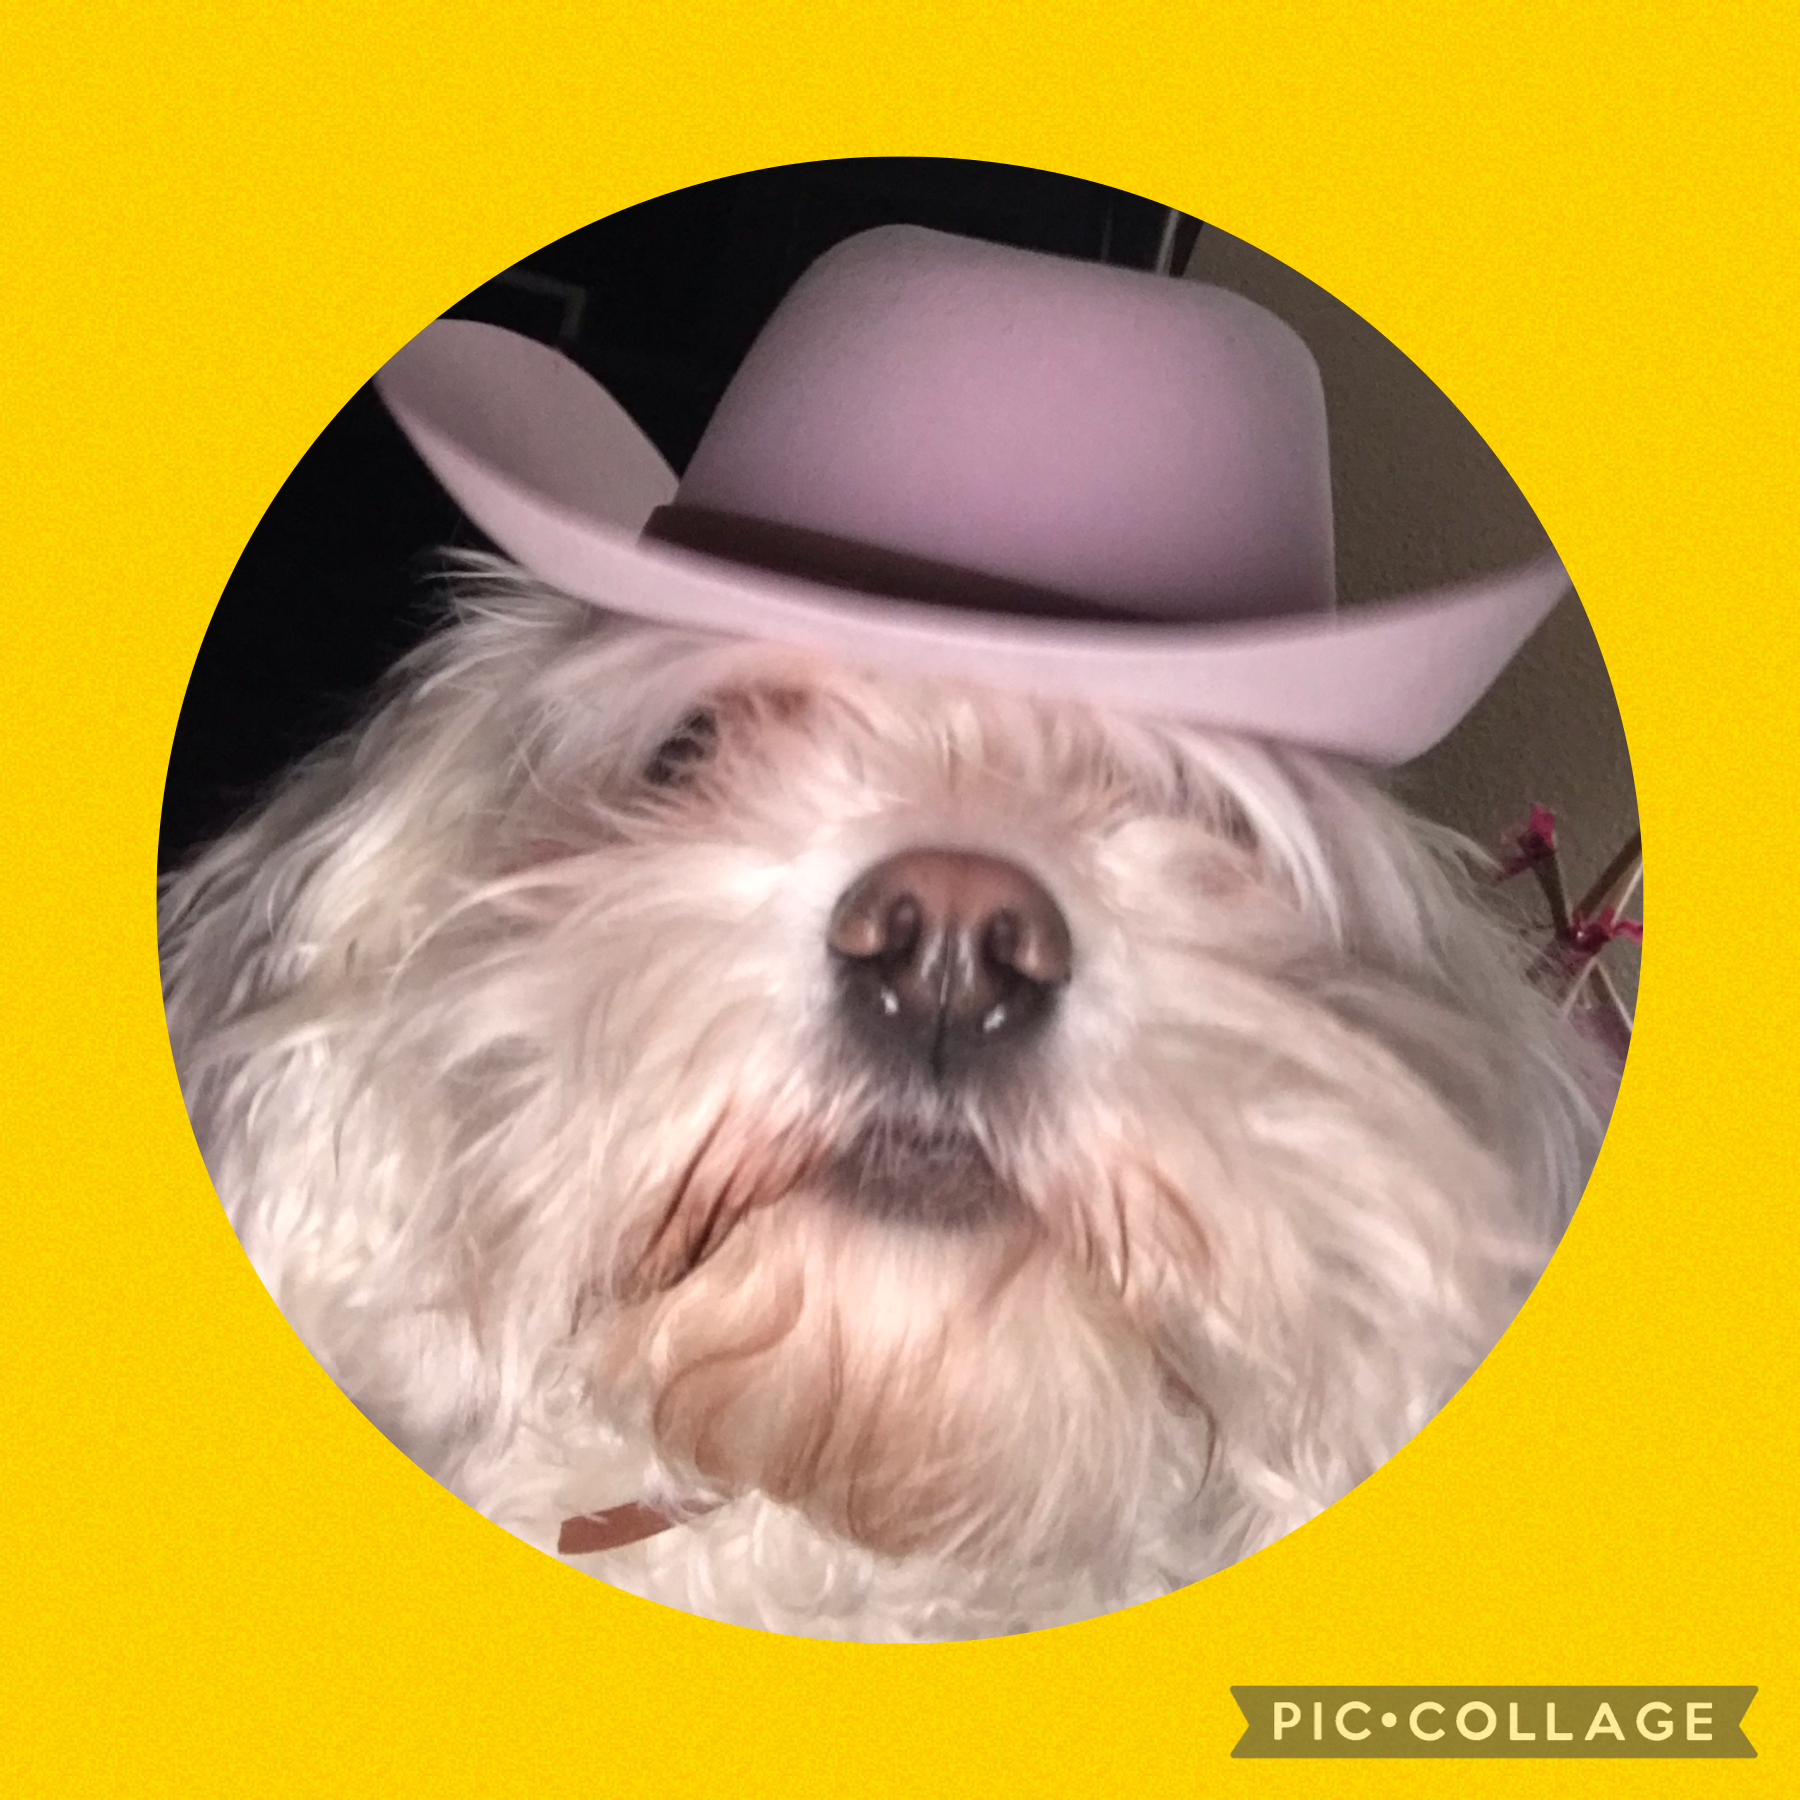 This is Holly, my mom's dog. She decided to take my phone without my knowing and take a selfie with a cowgirl hat on😂